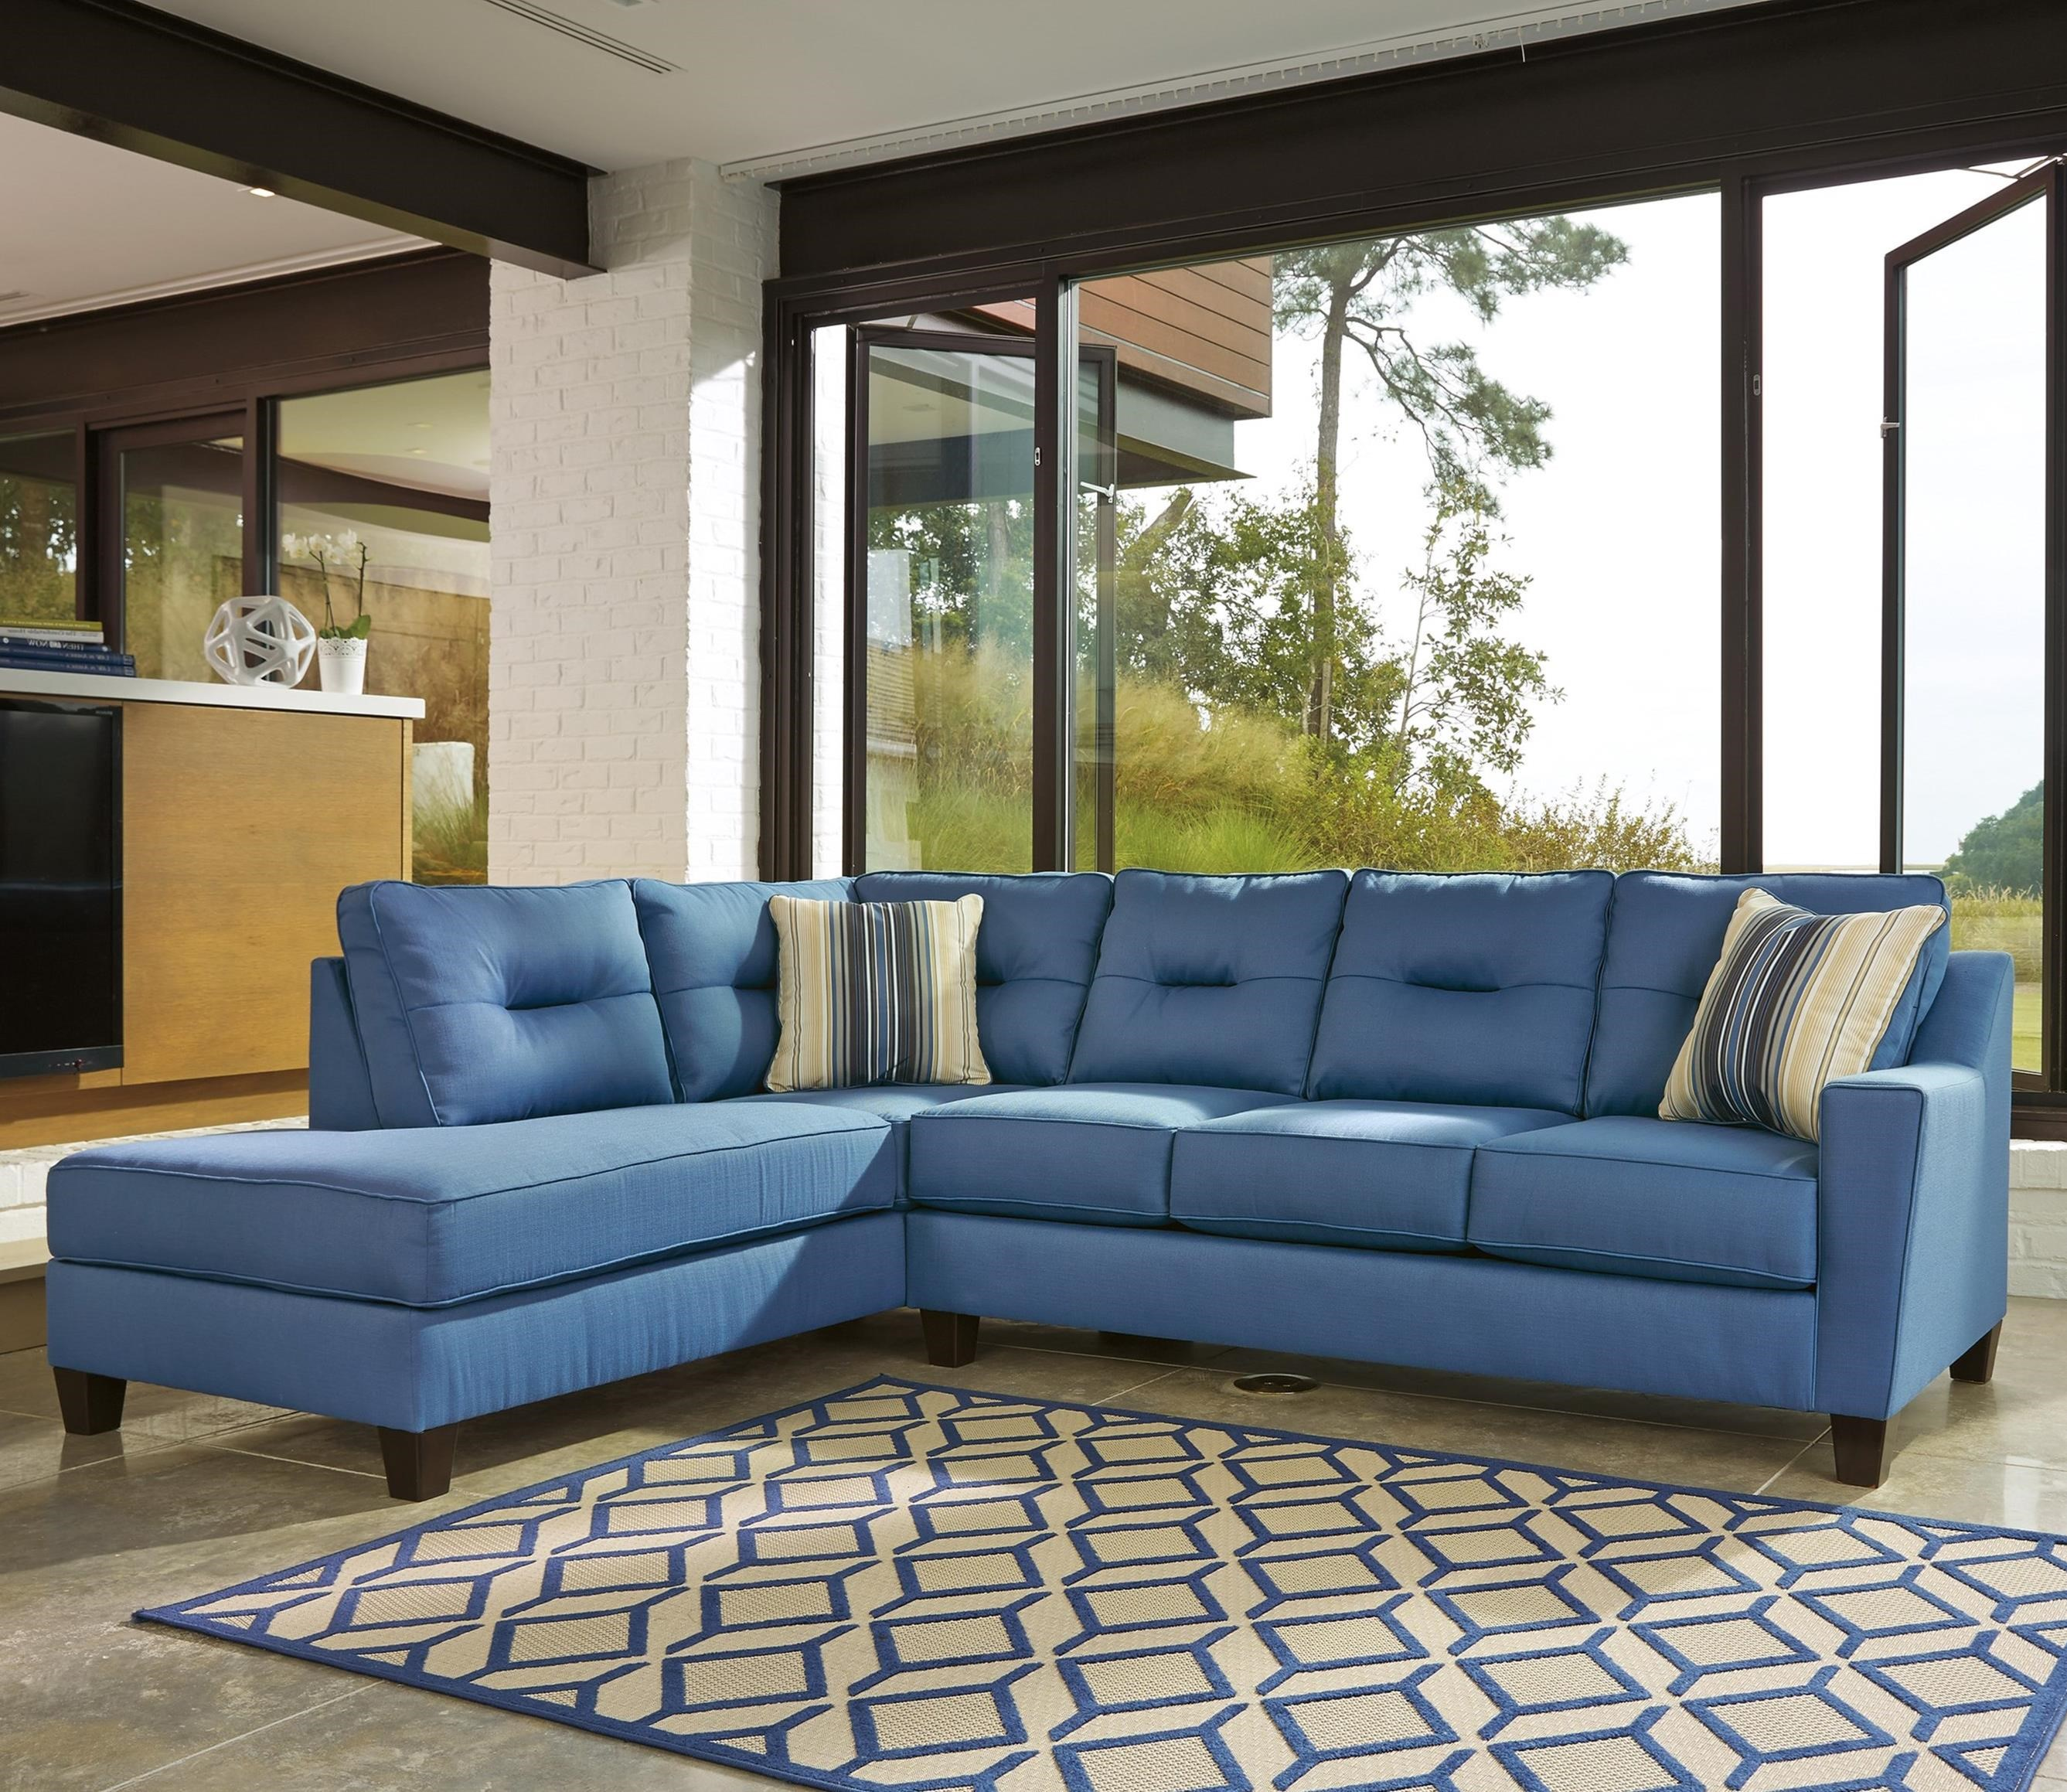 Benchcraft Kirwin Nuvella Sectional with Chaise - Item Number: 9960316+67